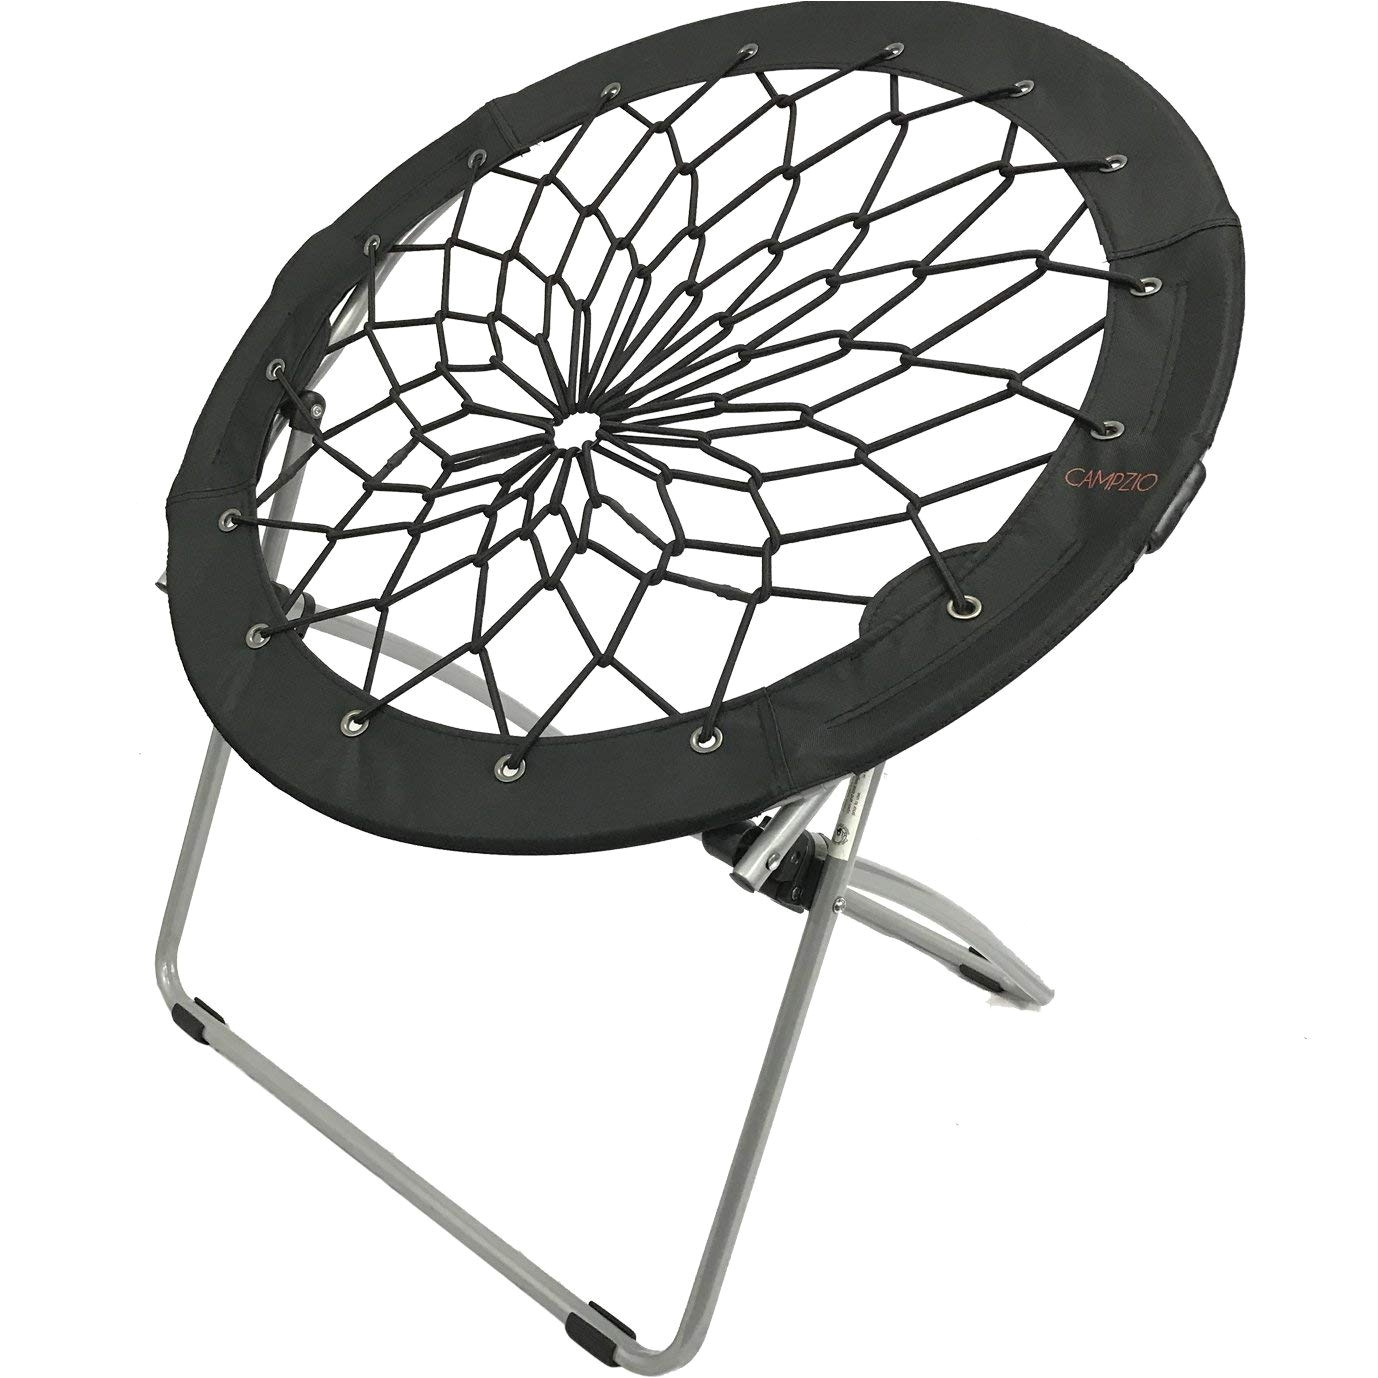 Baby Bungee Chair Amazon Com Campzio Bungee Chair Round Bungee Chair Folding